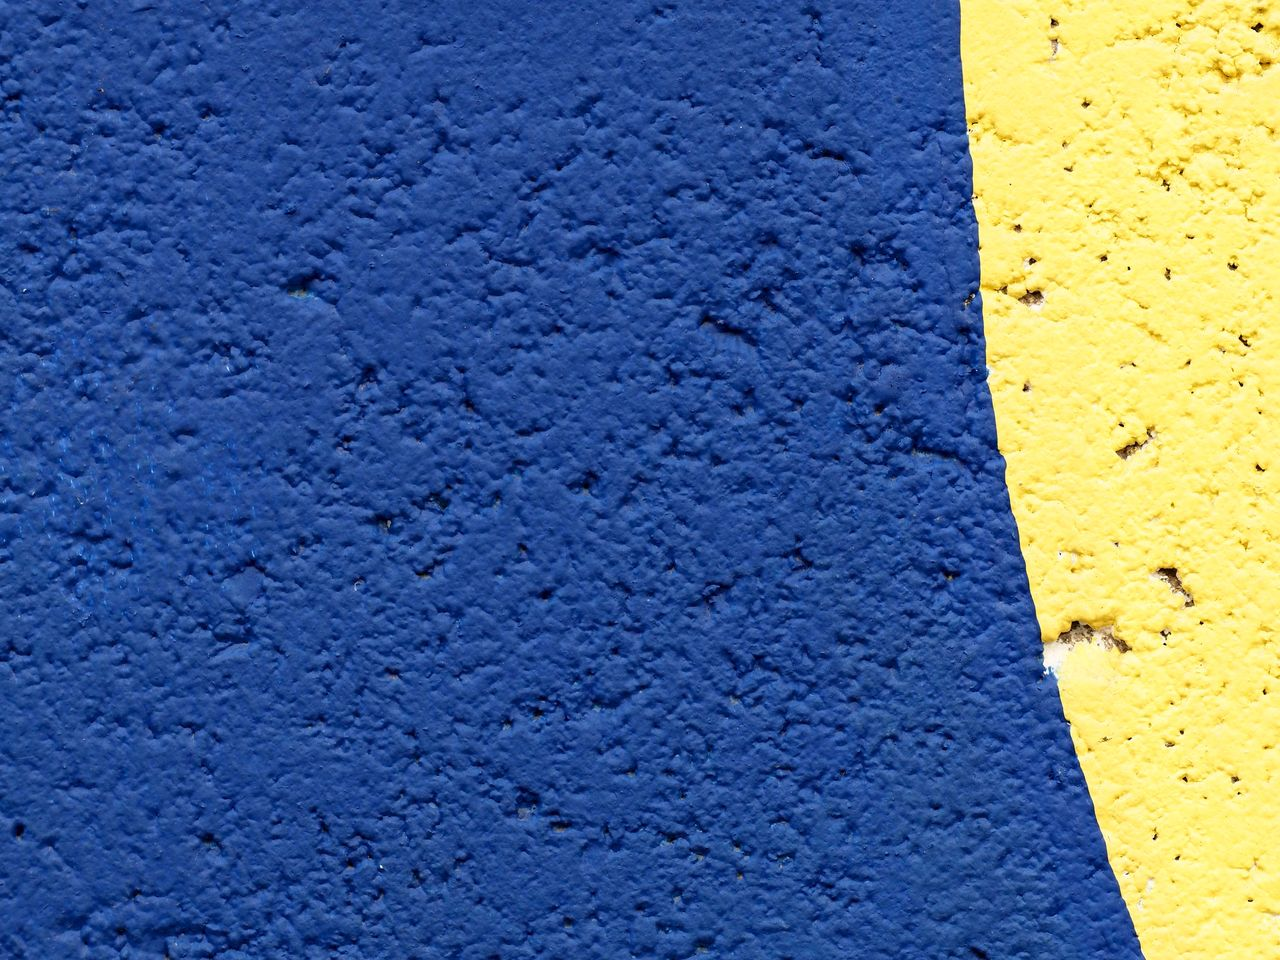 blue, yellow, textured, backgrounds, no people, full frame, close-up, built structure, architecture, wall - building feature, day, pattern, rough, outdoors, building exterior, high angle view, concrete, gray, copy space, street